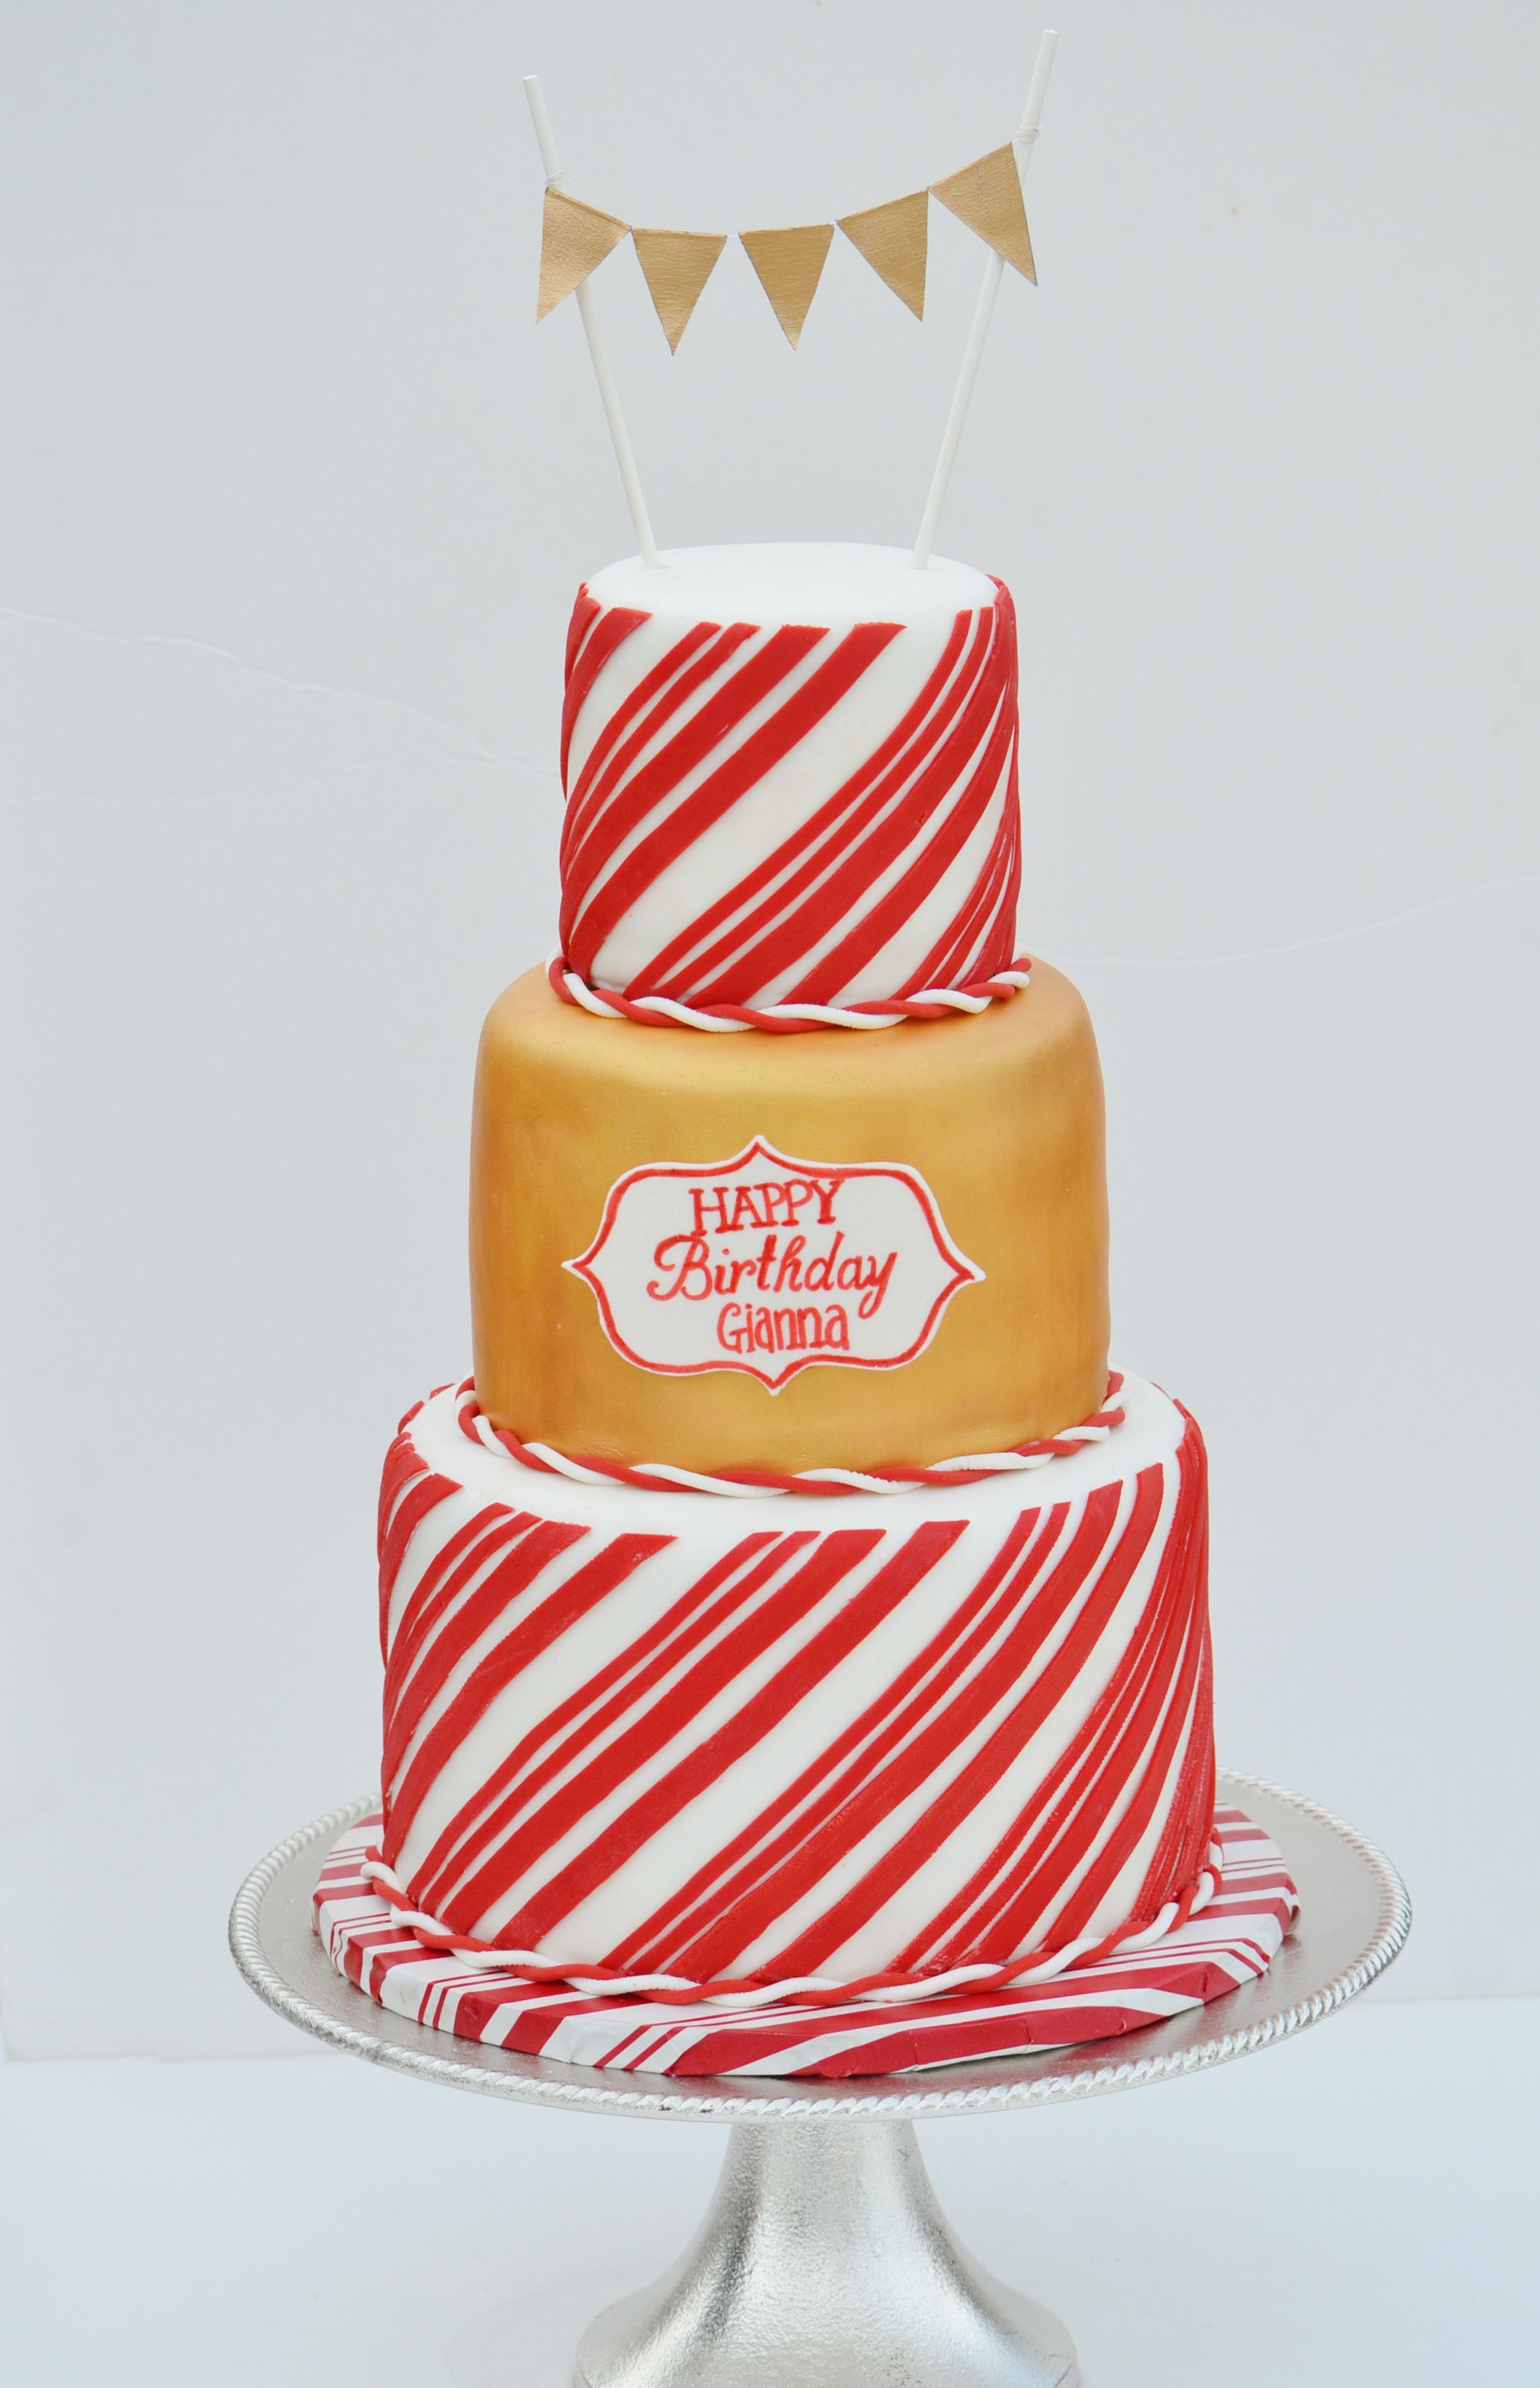 Gold and Candy Cane Themed Cake